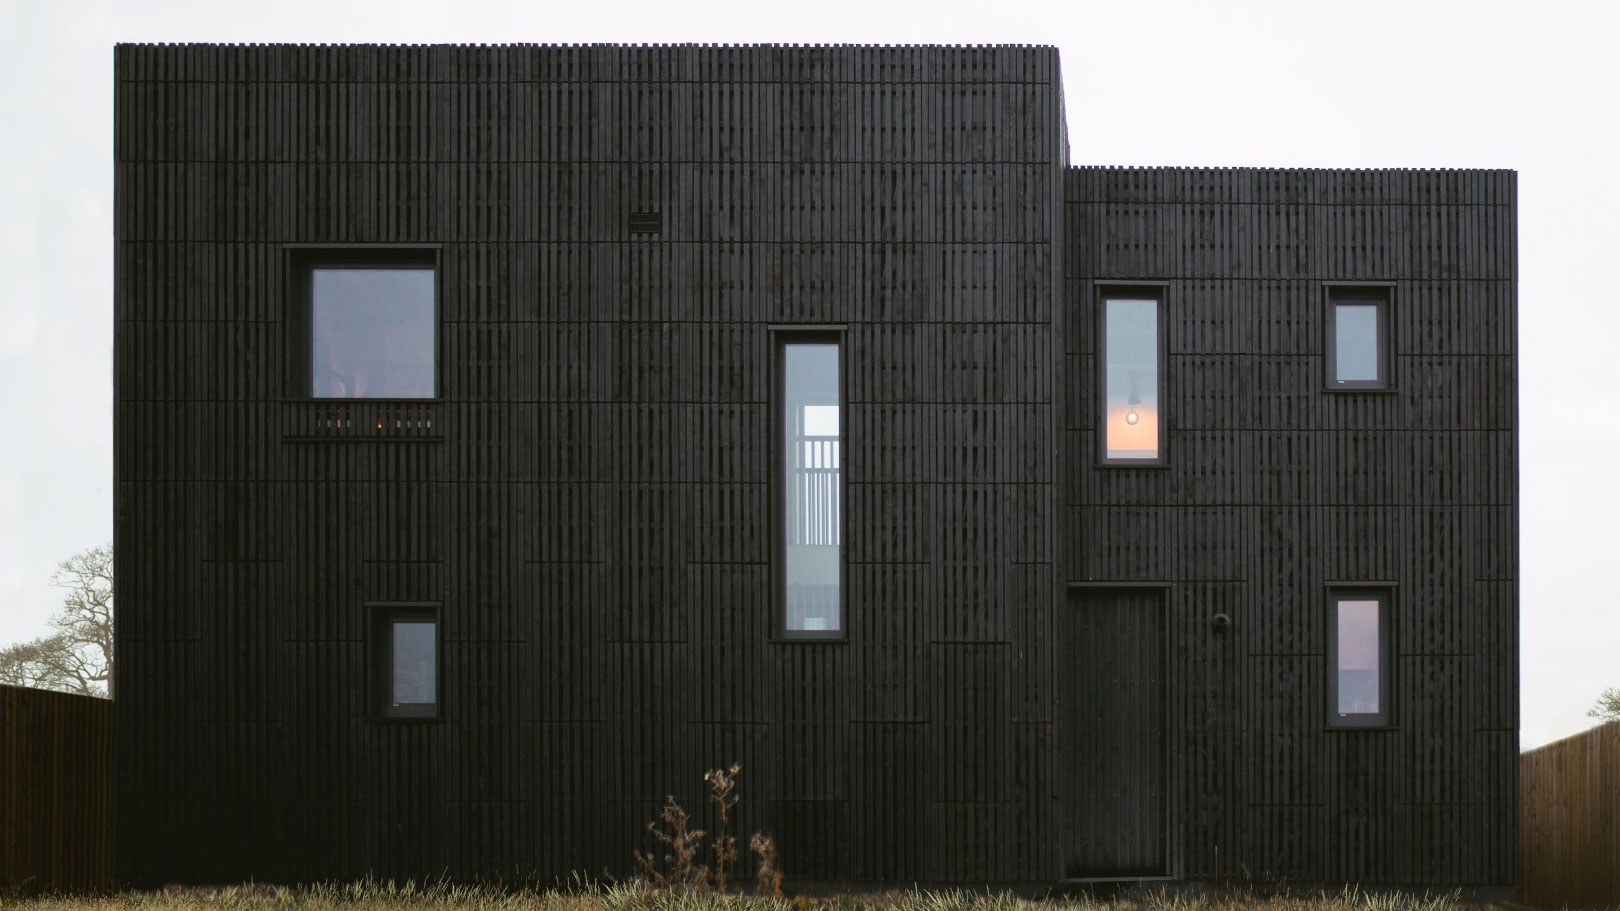 Studio_Bark_U-Build_Box_House_L-(36)_1.jpg